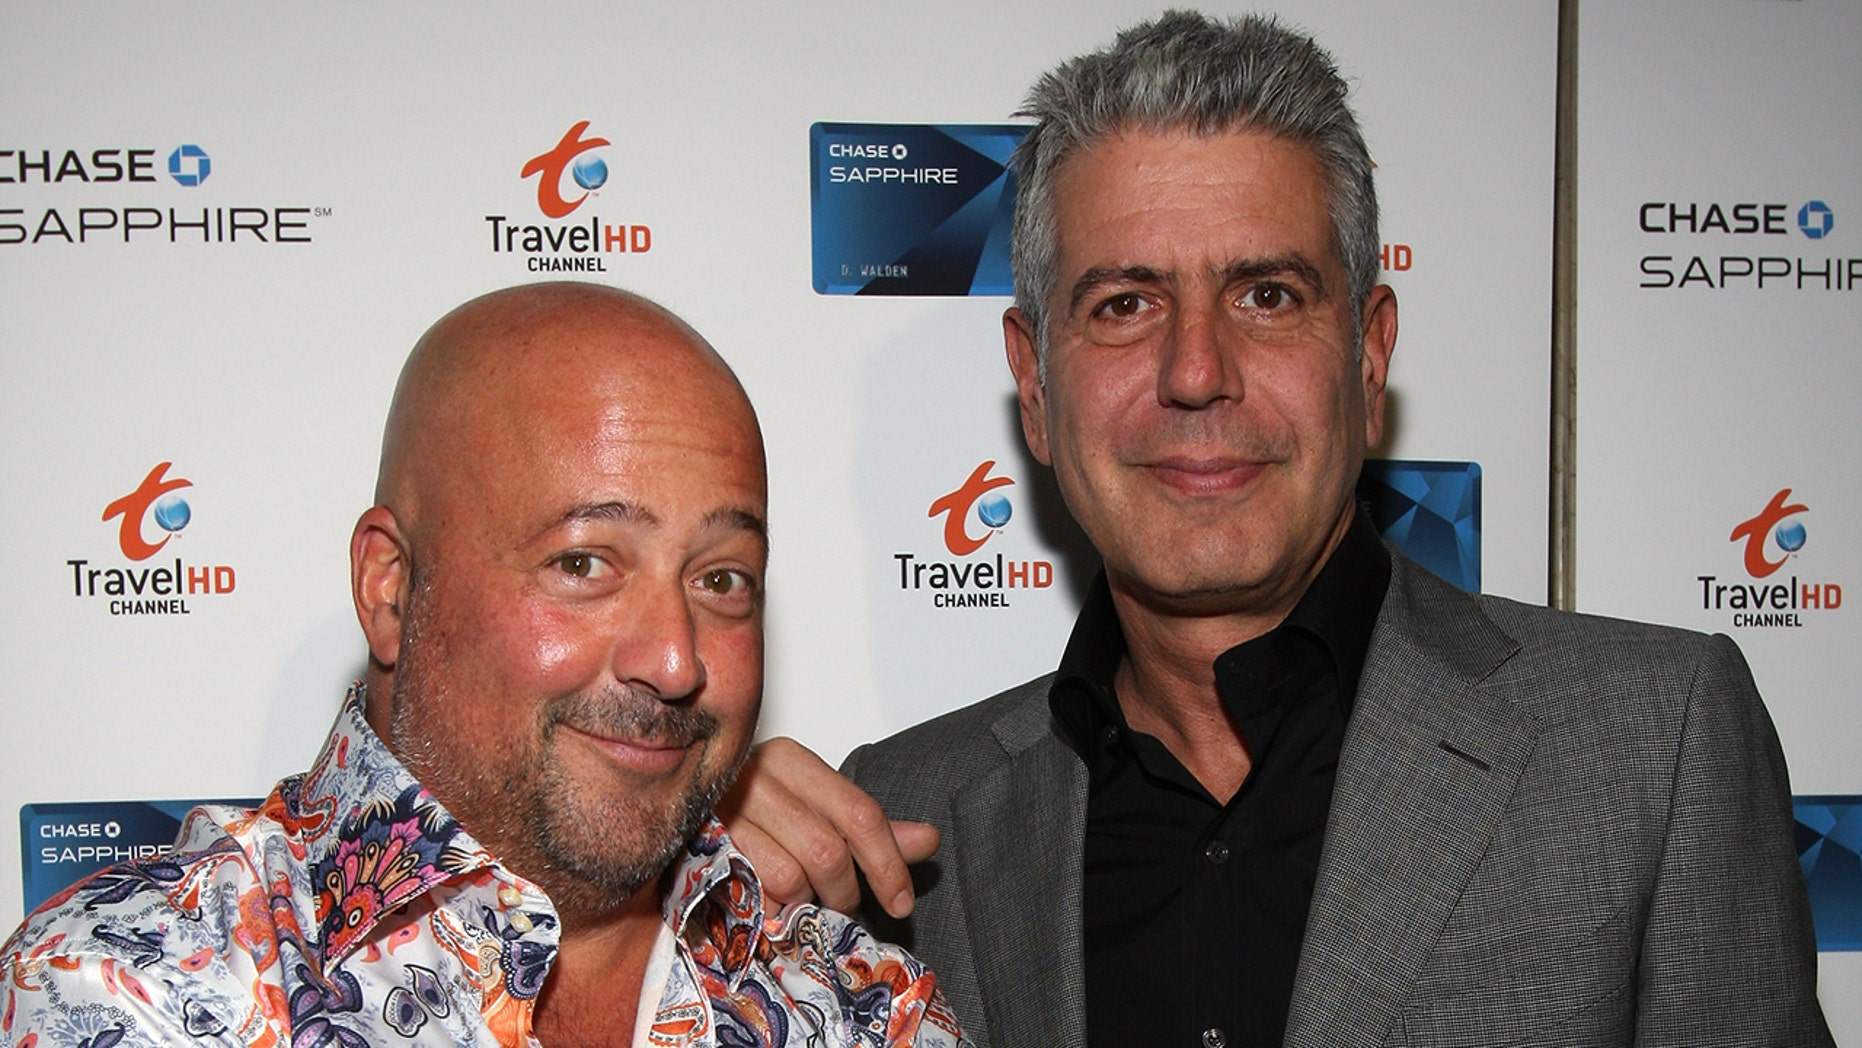 Chefs Andrew Zimmern and Anthony Bourdain attend the Chase Sapphie Card Launch at Weather Room at Top of the Rock on October 22, 2009 in New York City.